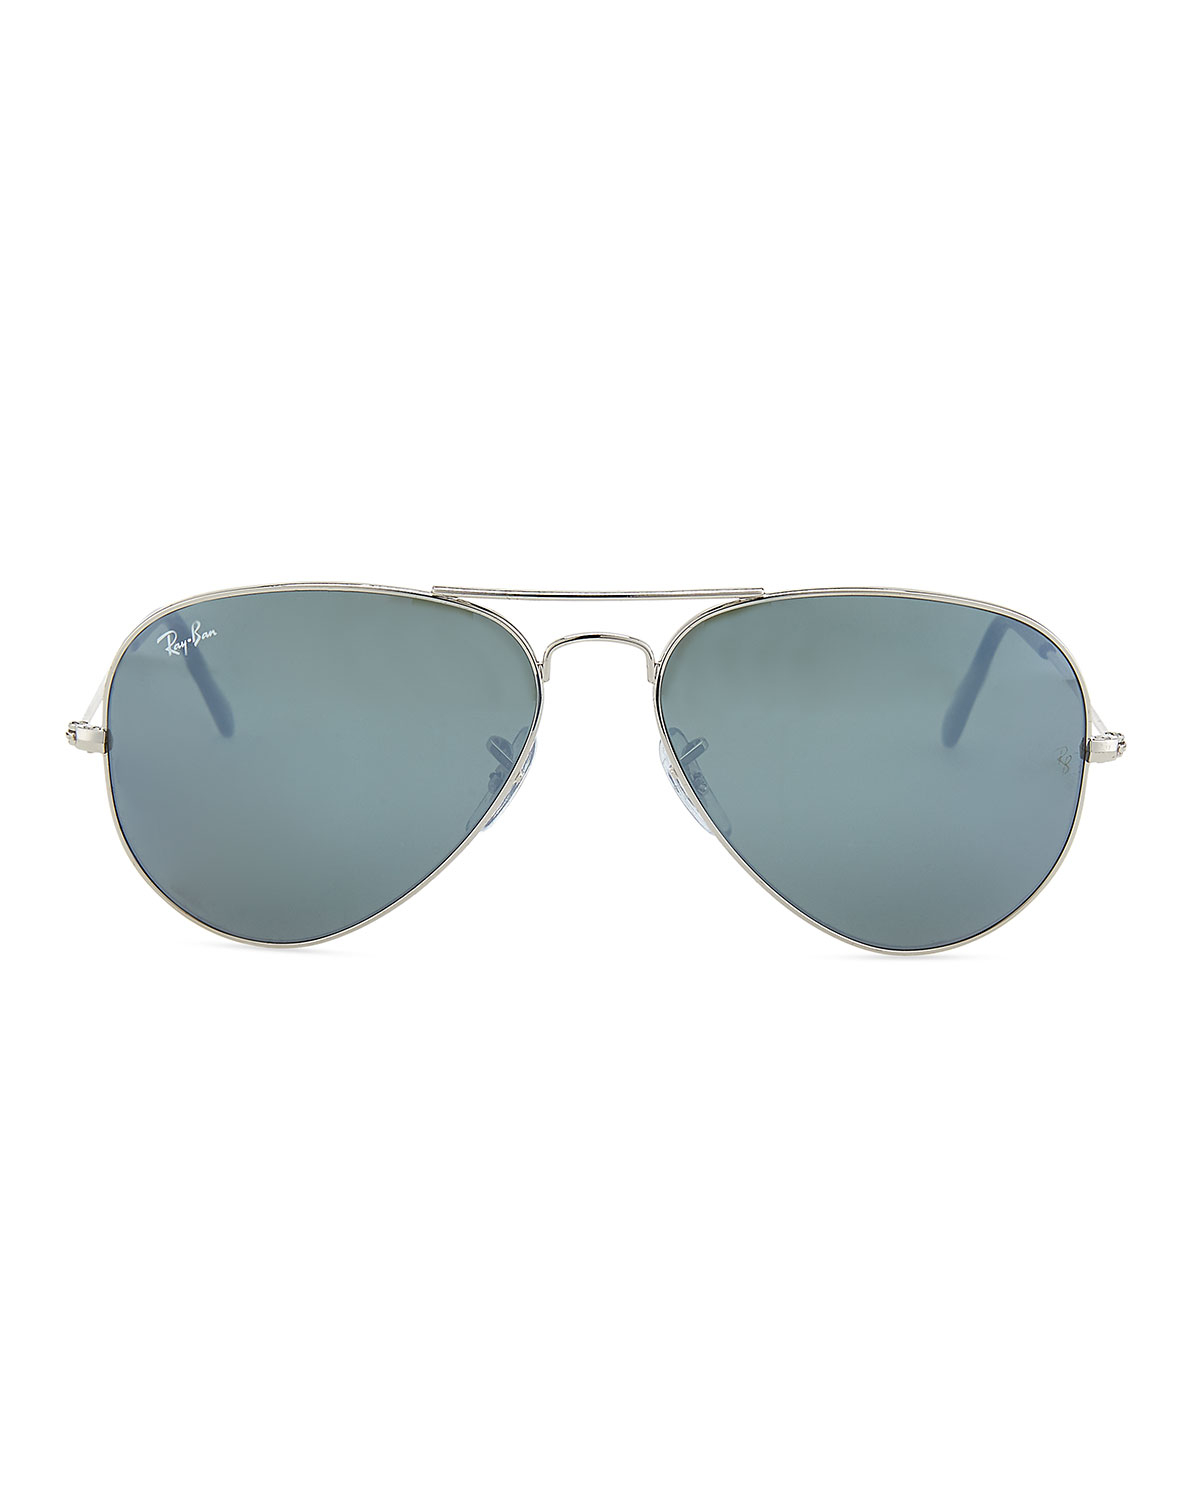 original aviator sunglasses  Ray-ban Original Aviator Sunglasses in Metallic for Men